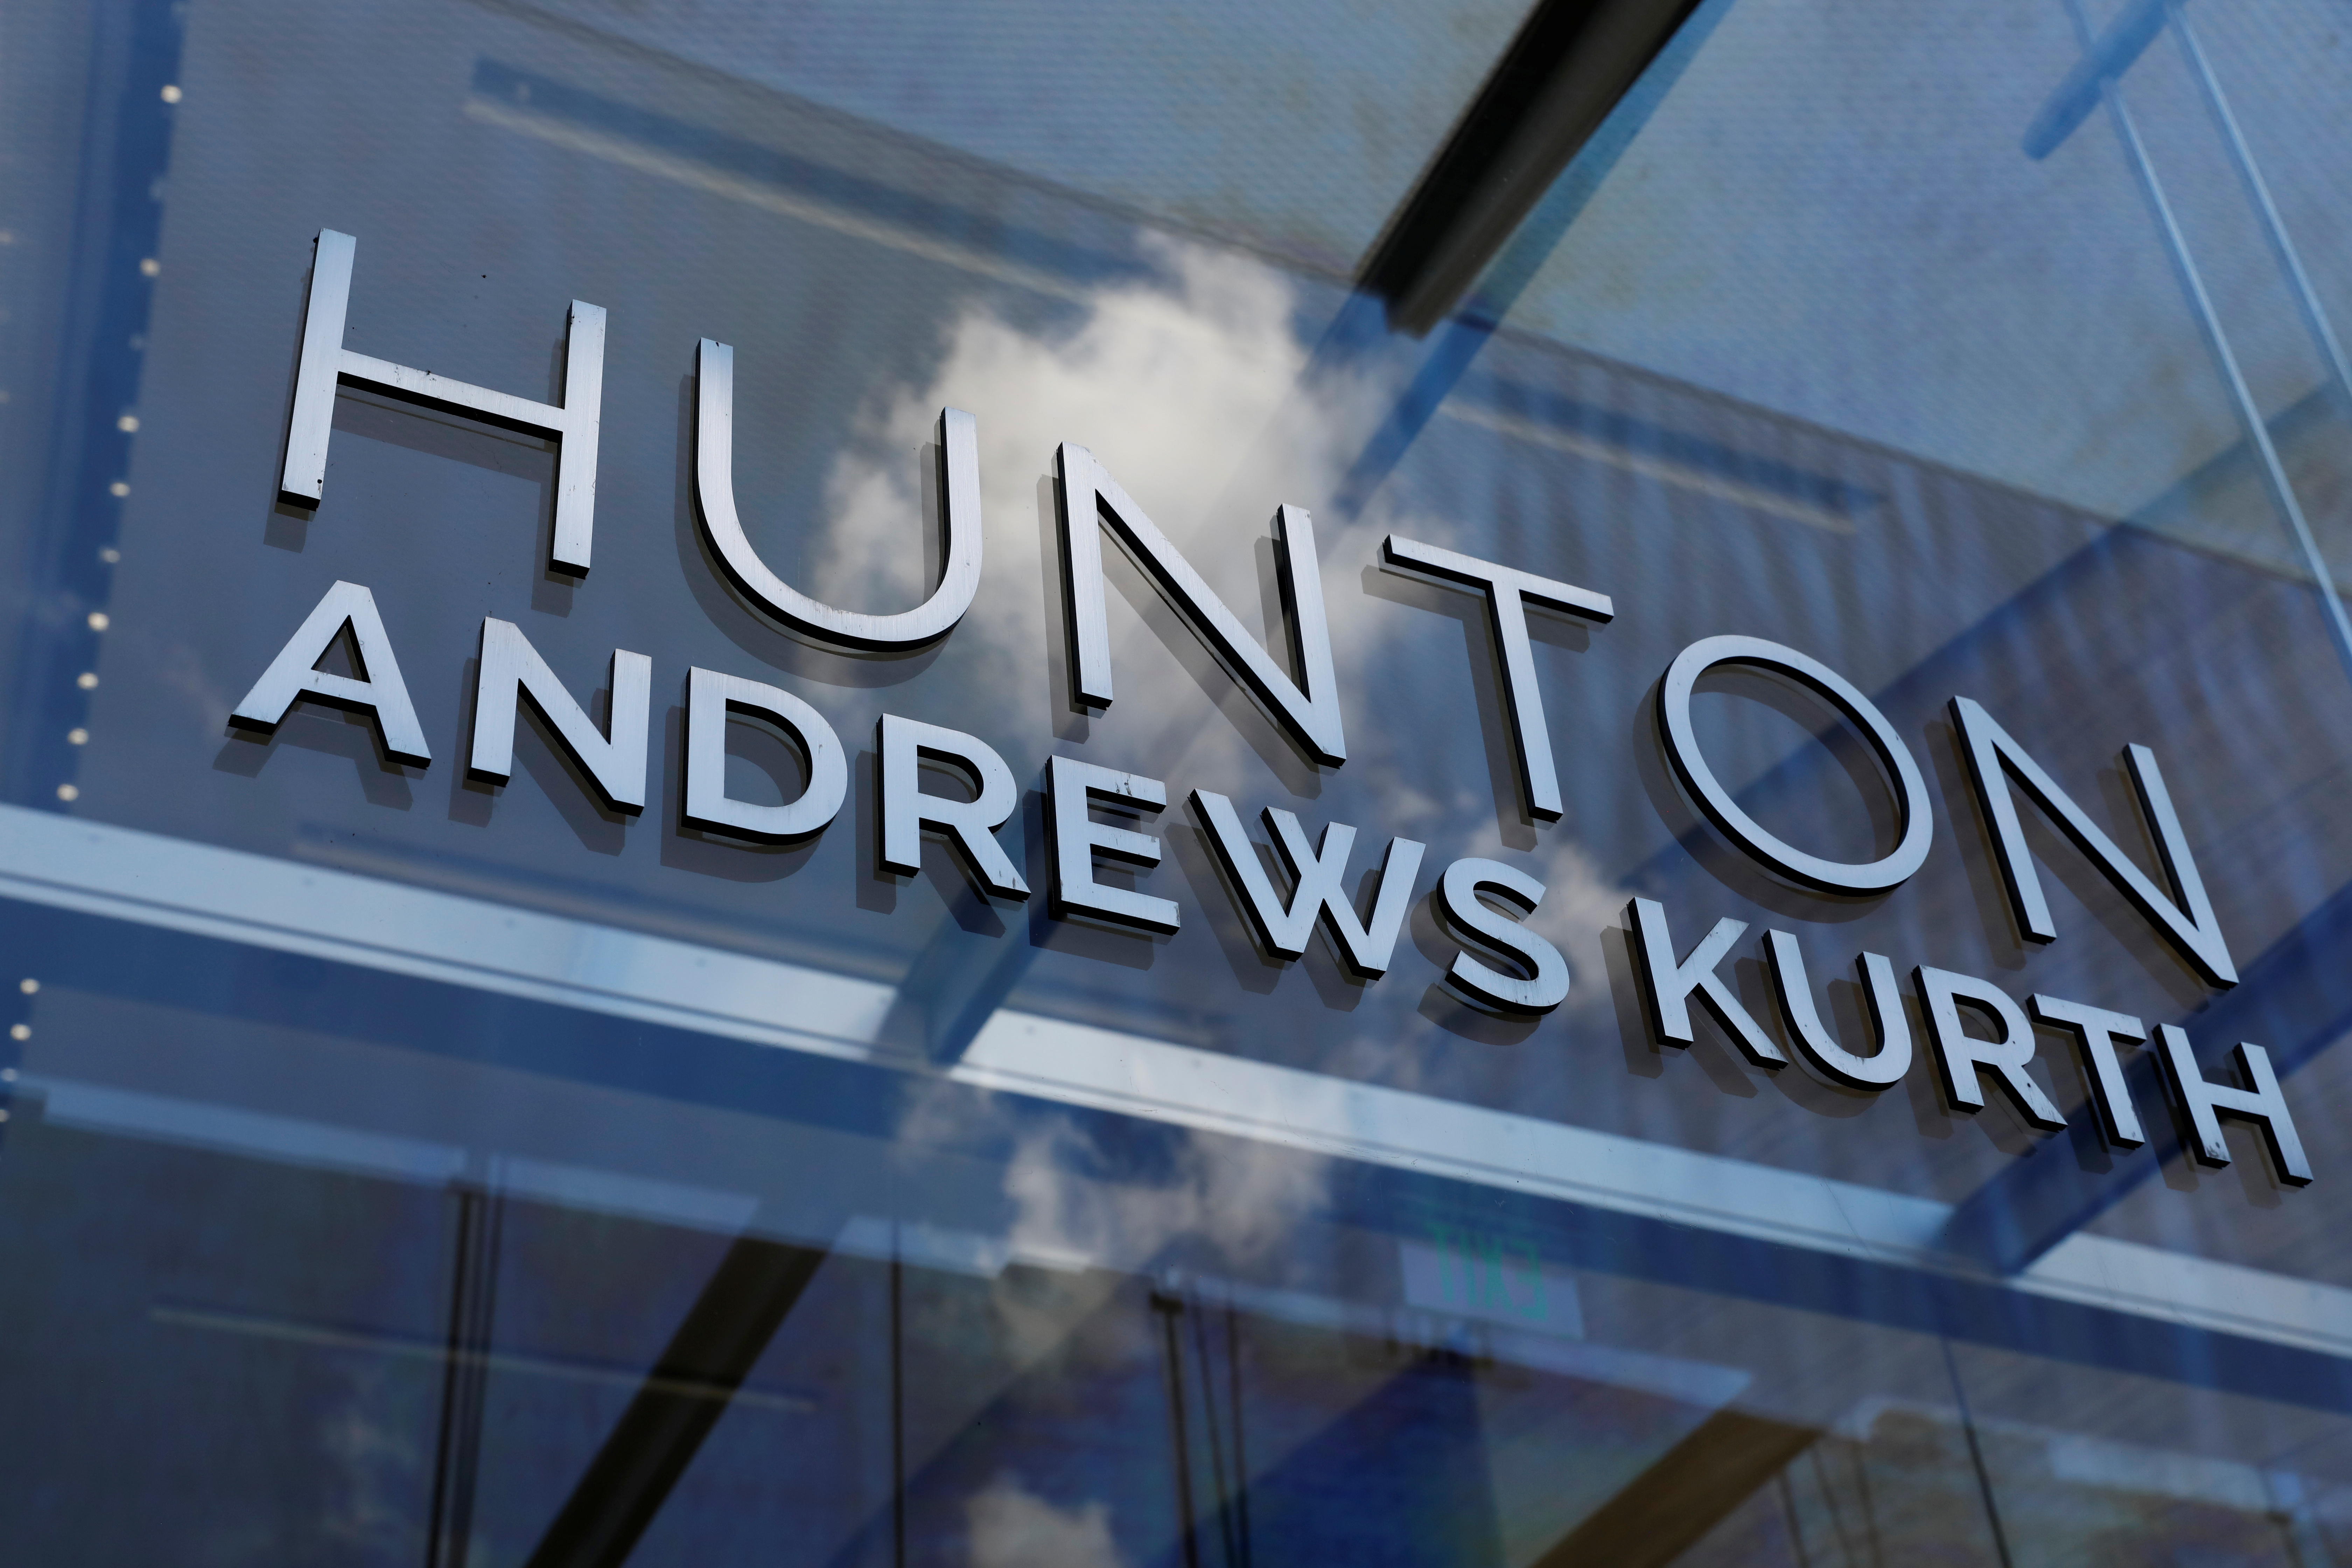 Signage is seen outside of the law firm Hunton Andrews Kurth in Washington, D.C., U.S., August 30, 2020. REUTERS/Andrew Kelly